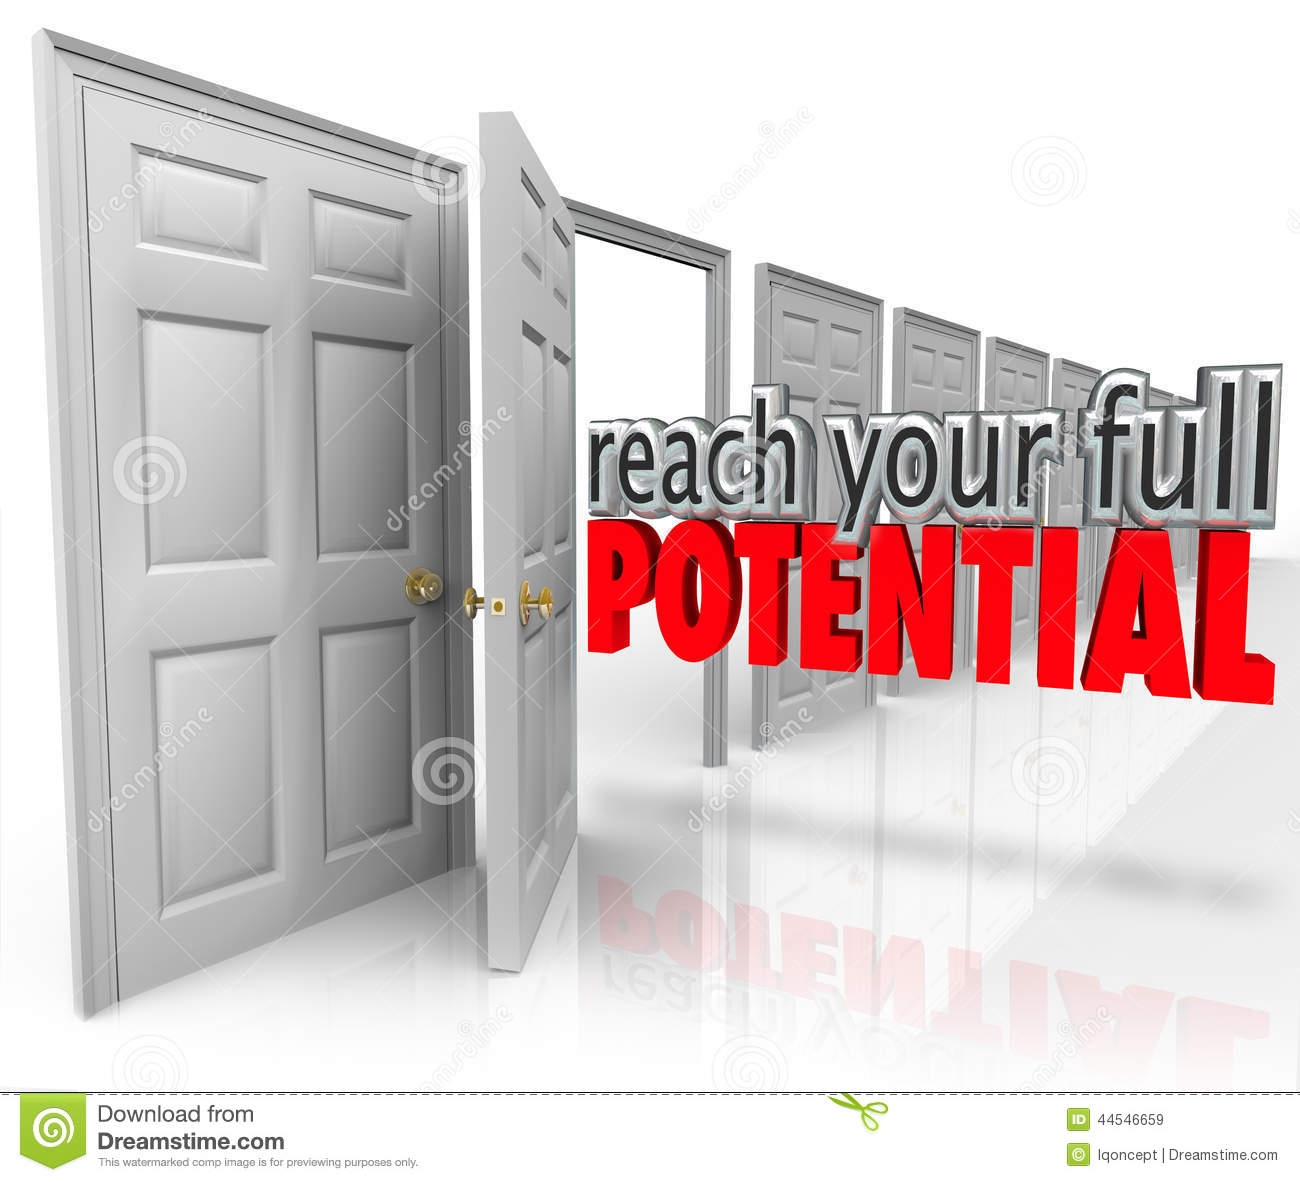 Reach your full potential 3d words coming out an open door leading to